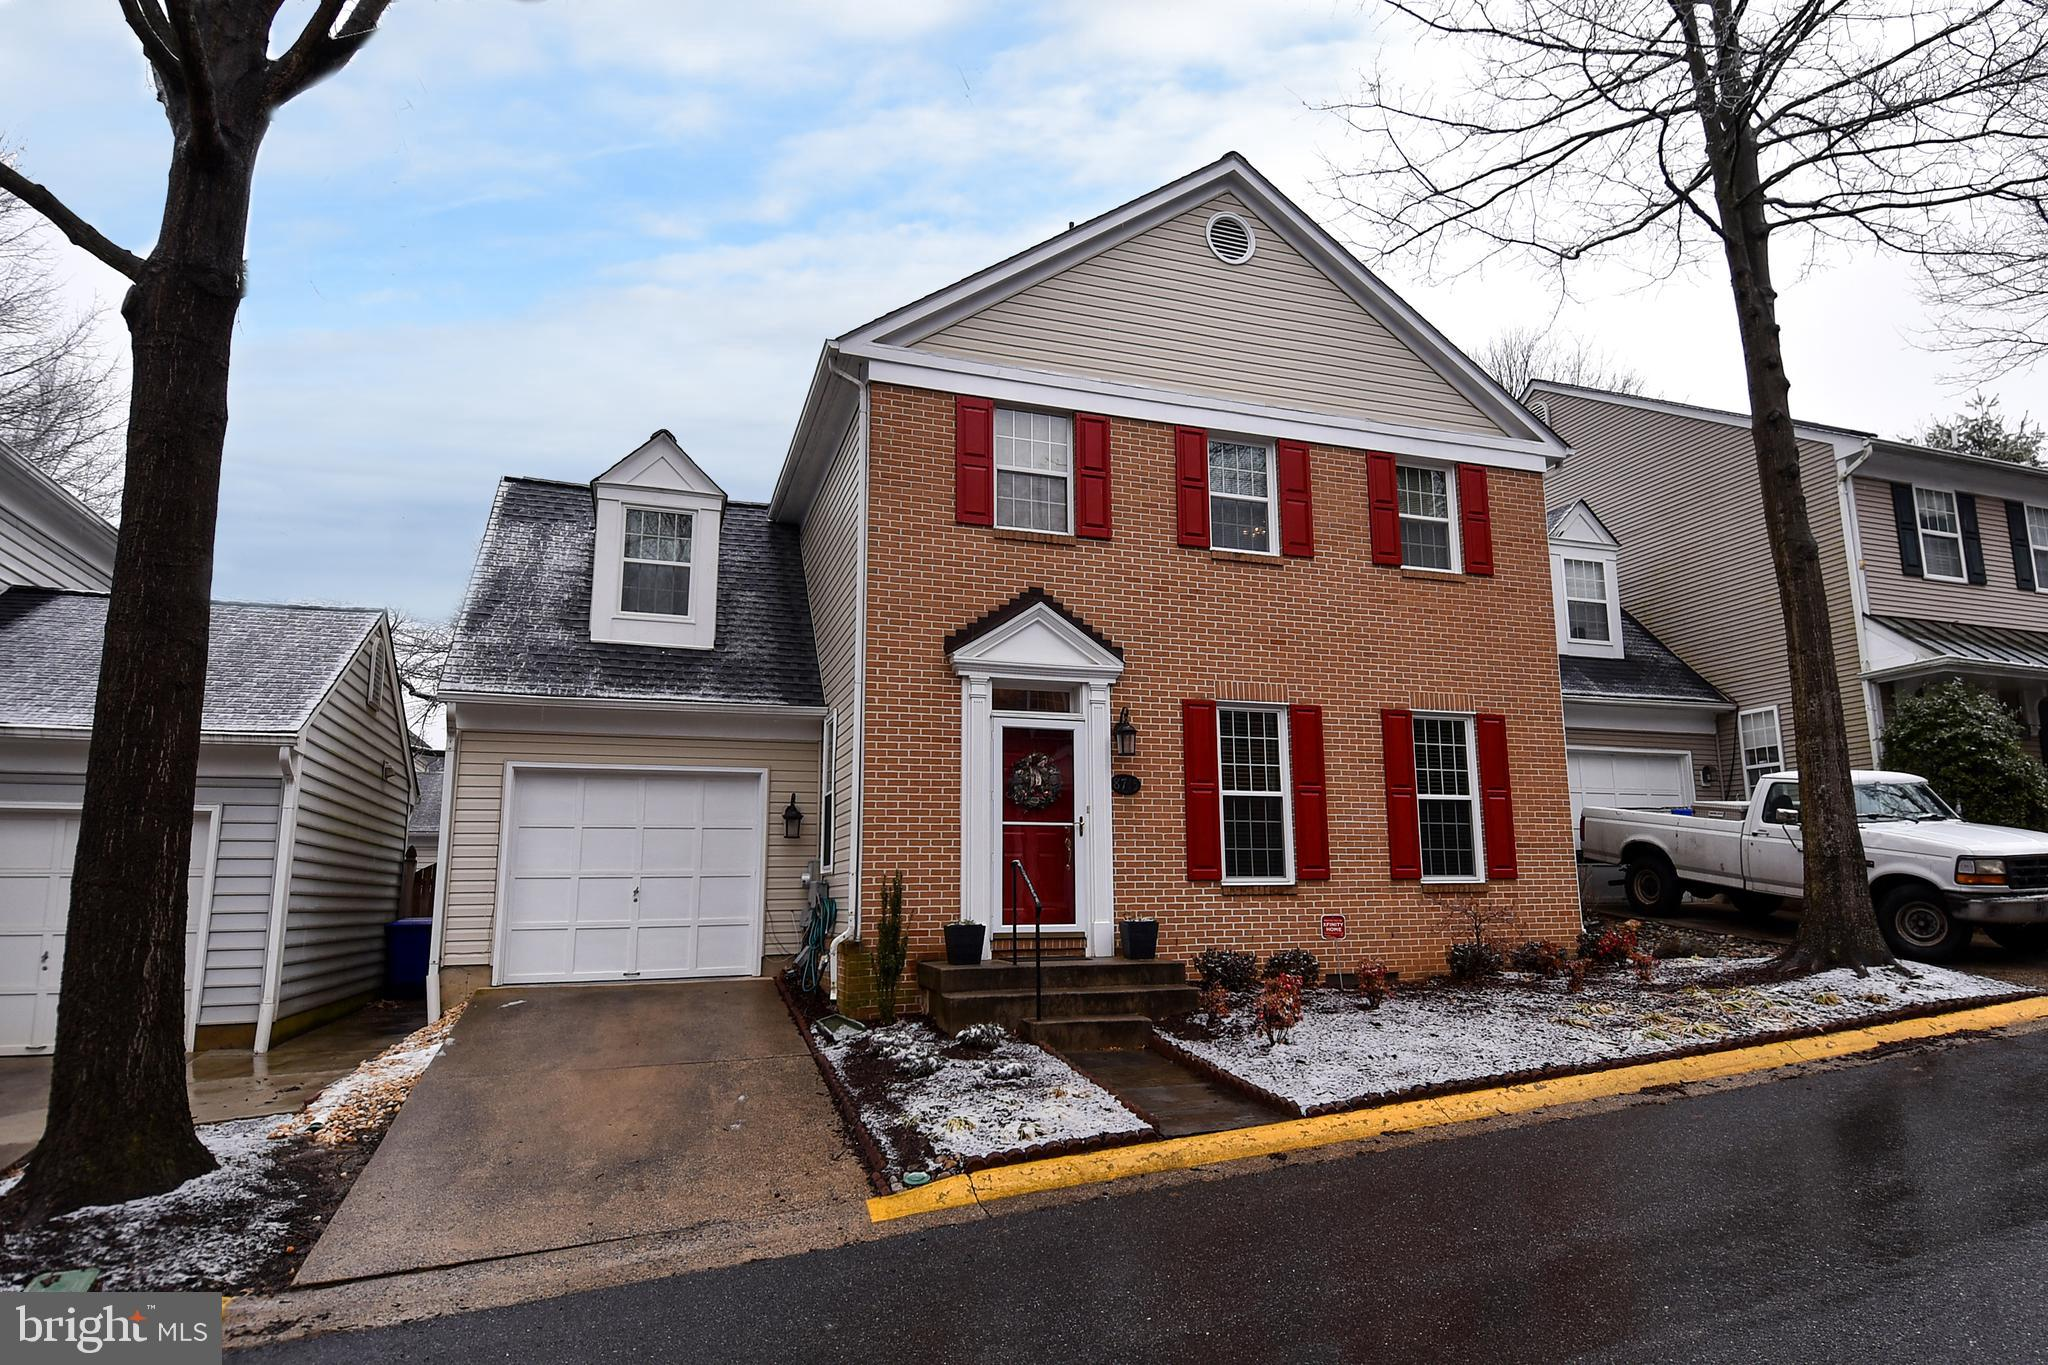 8715 IVYBERRY WAY, MONTGOMERY VILLAGE, MD 20886